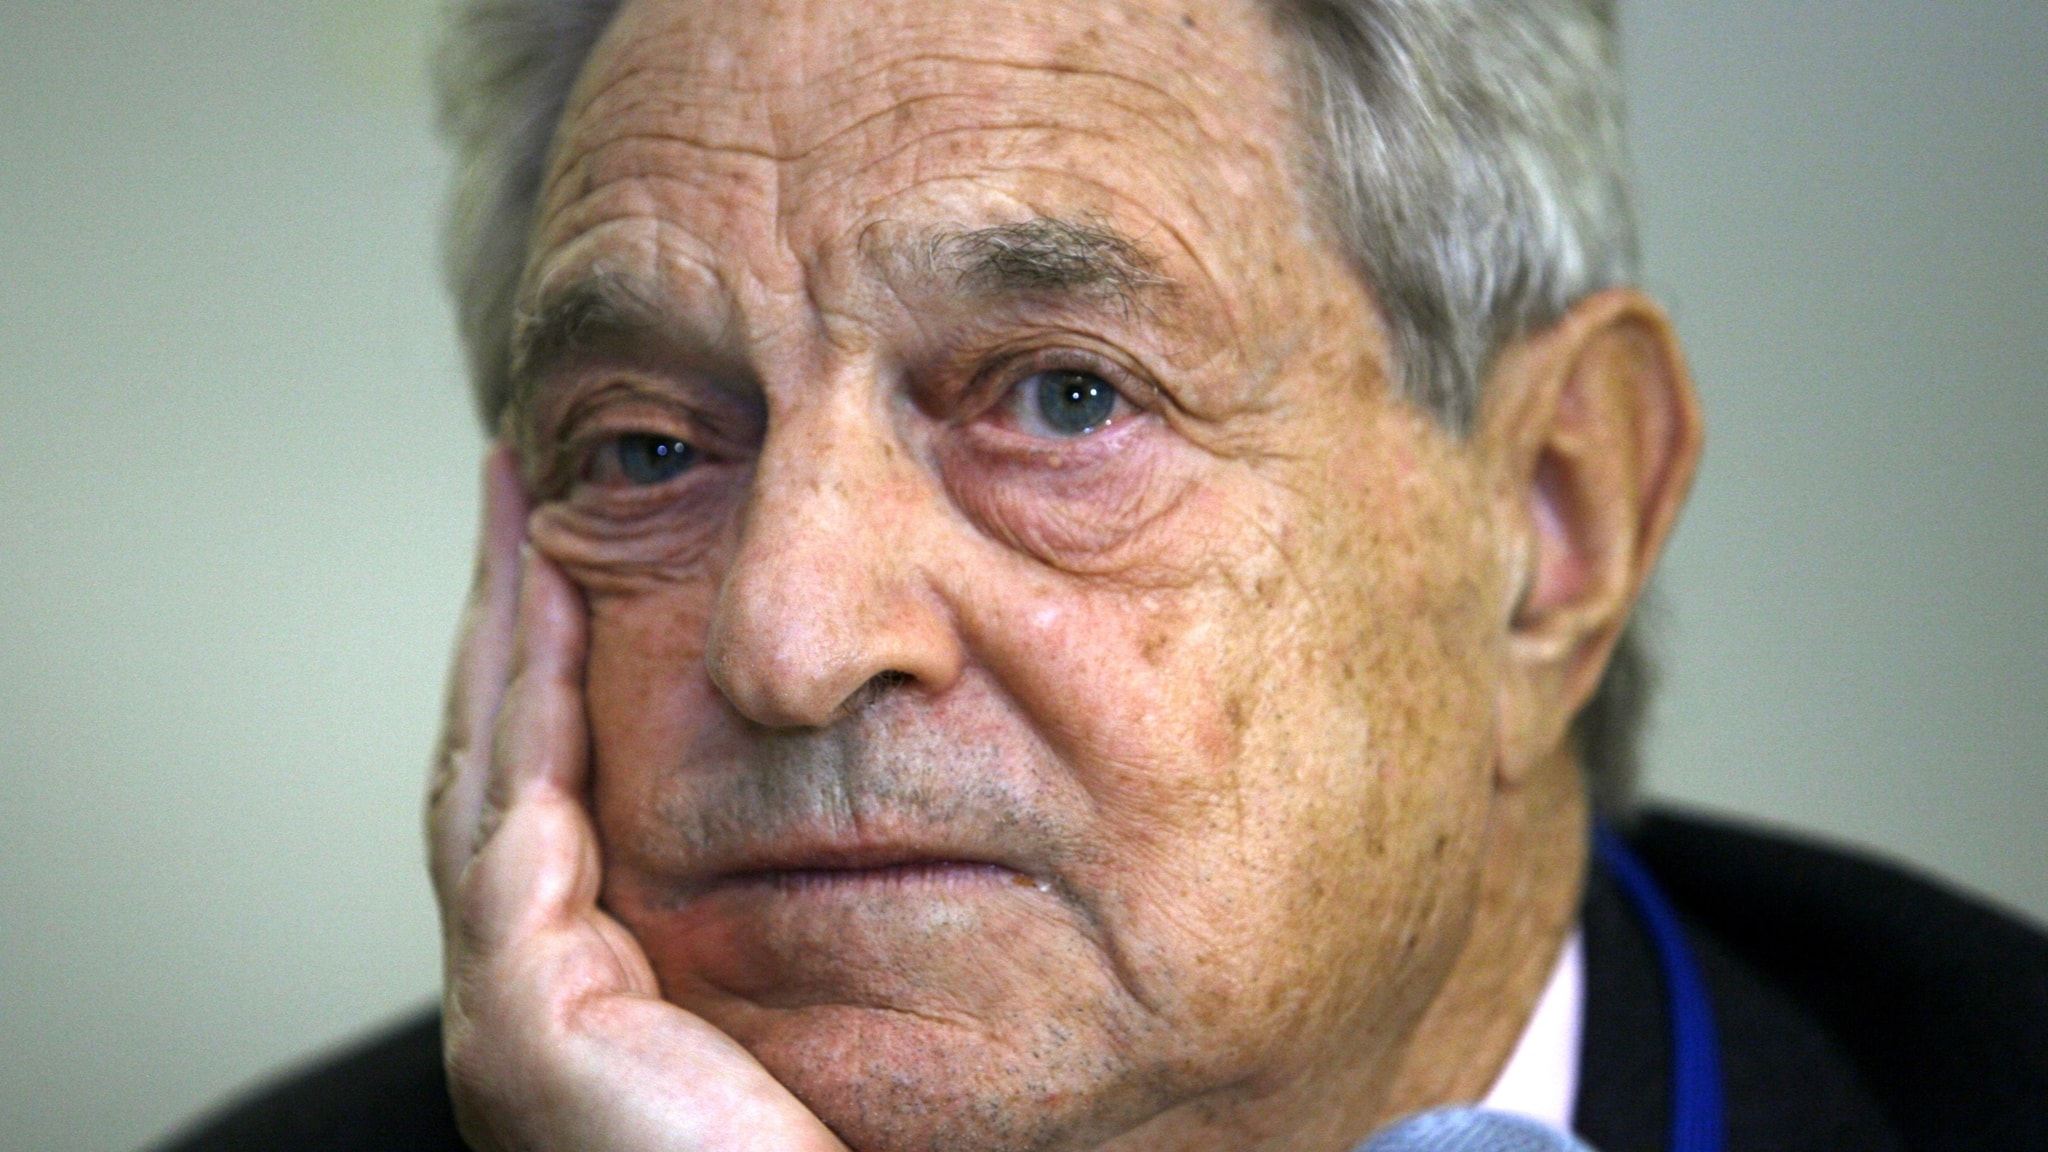 Nationalisternas hatobjekt George Soros